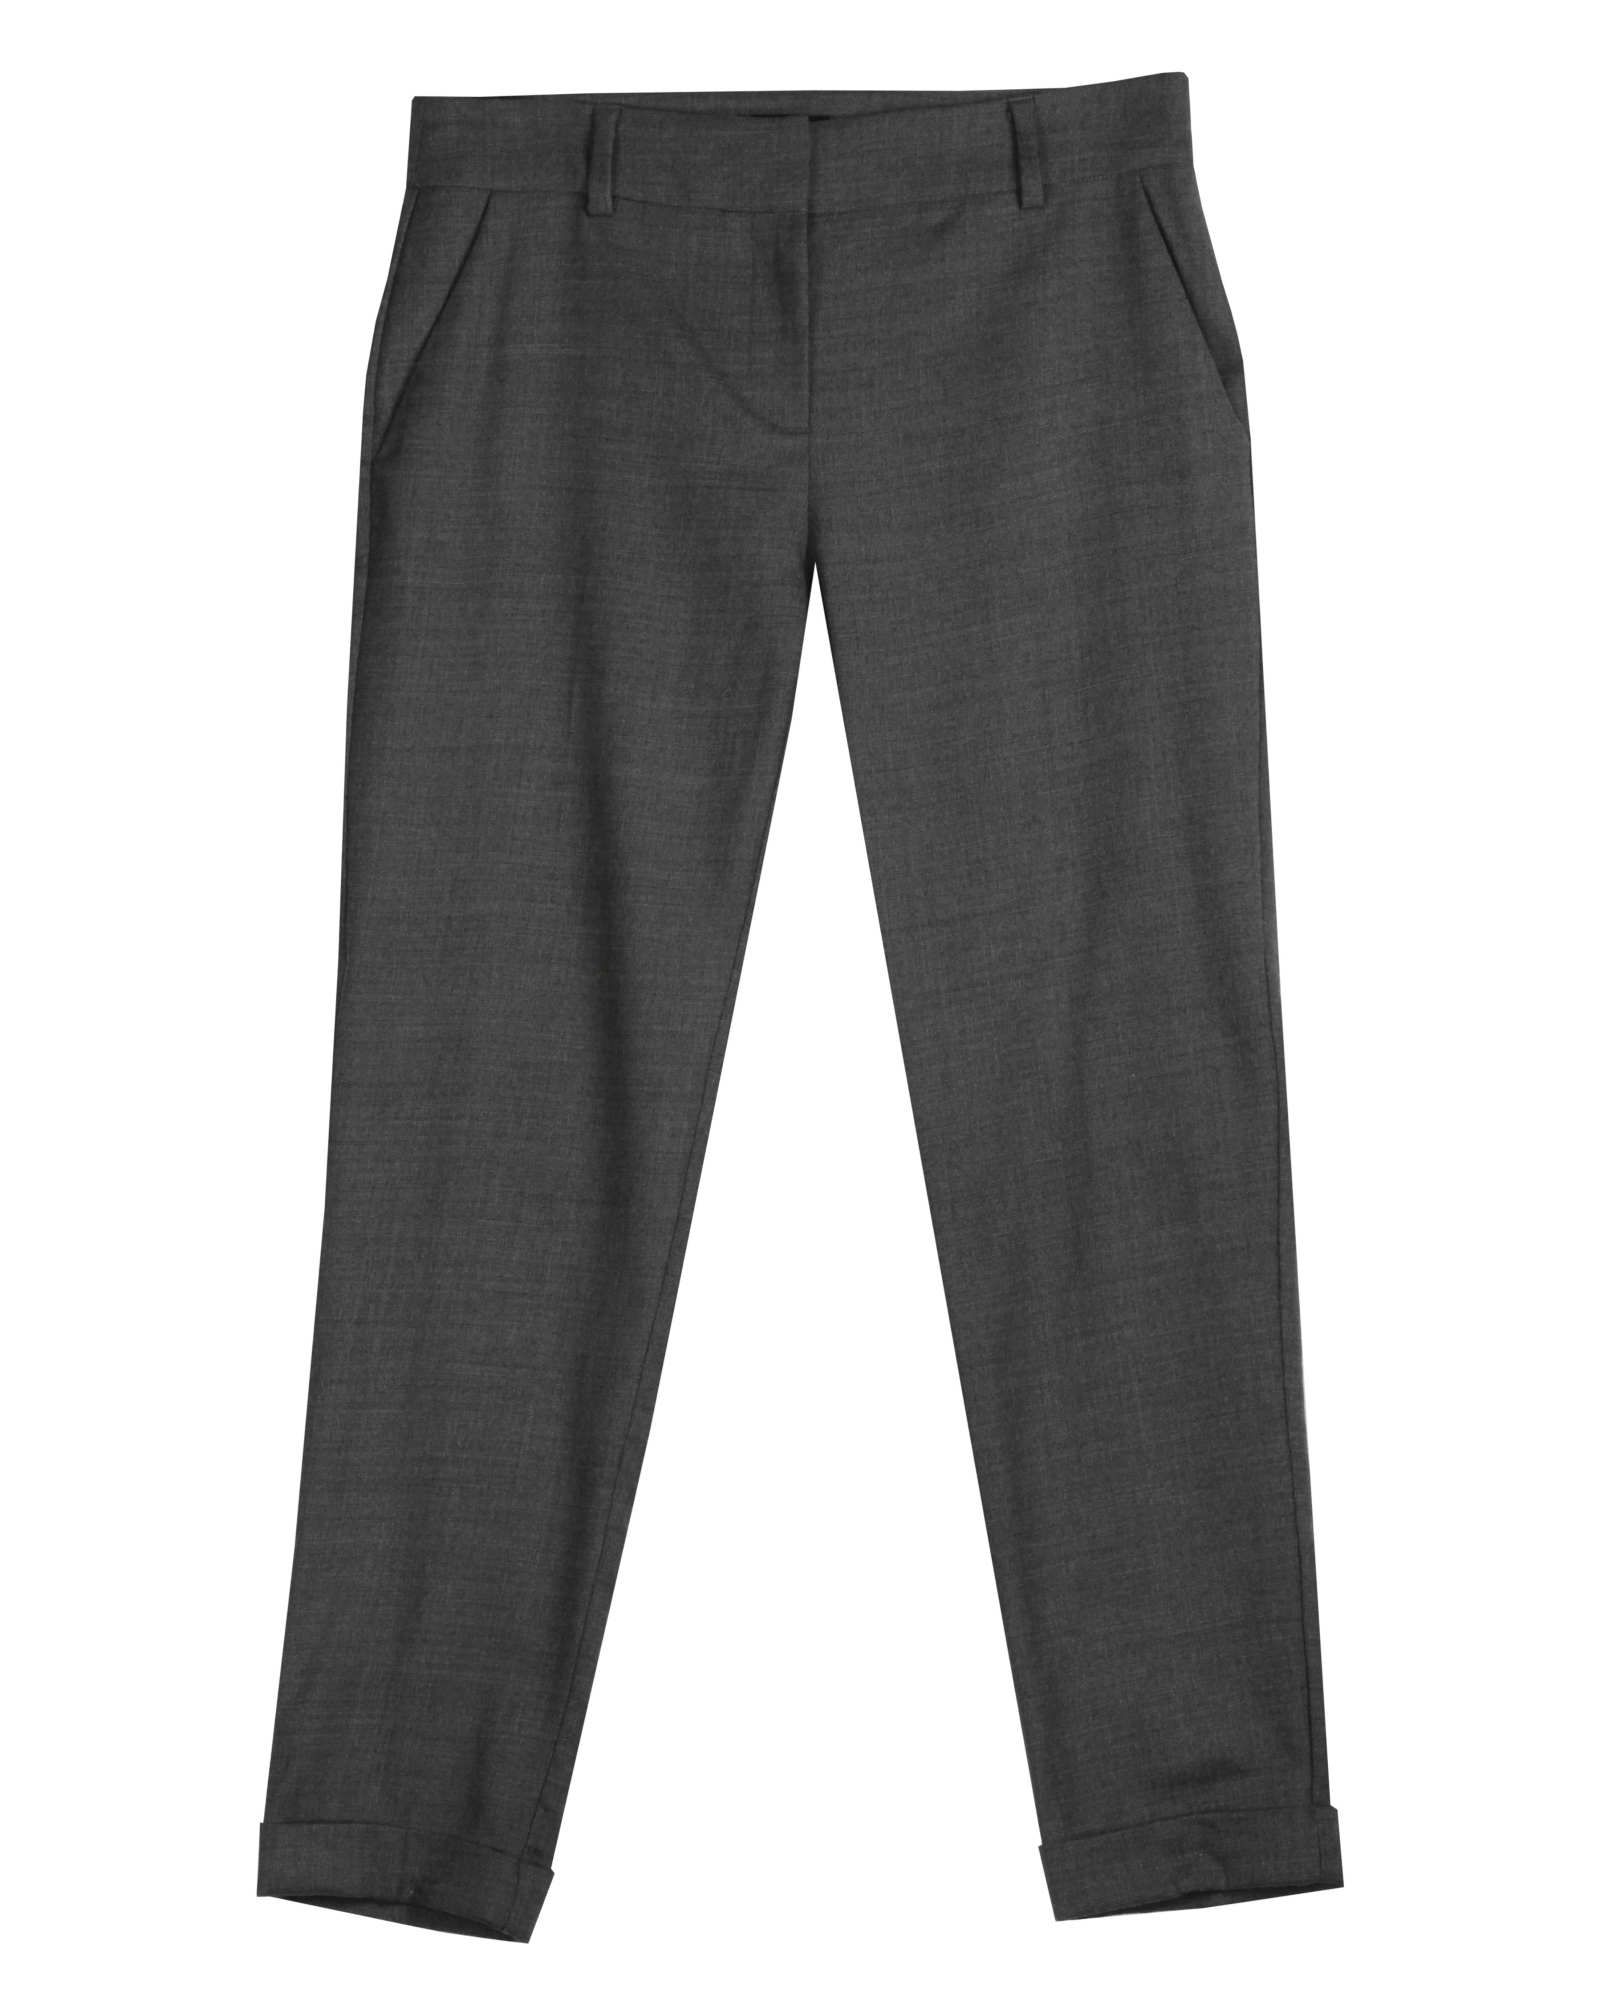 Heathered Stretch Flannel Twill Pant